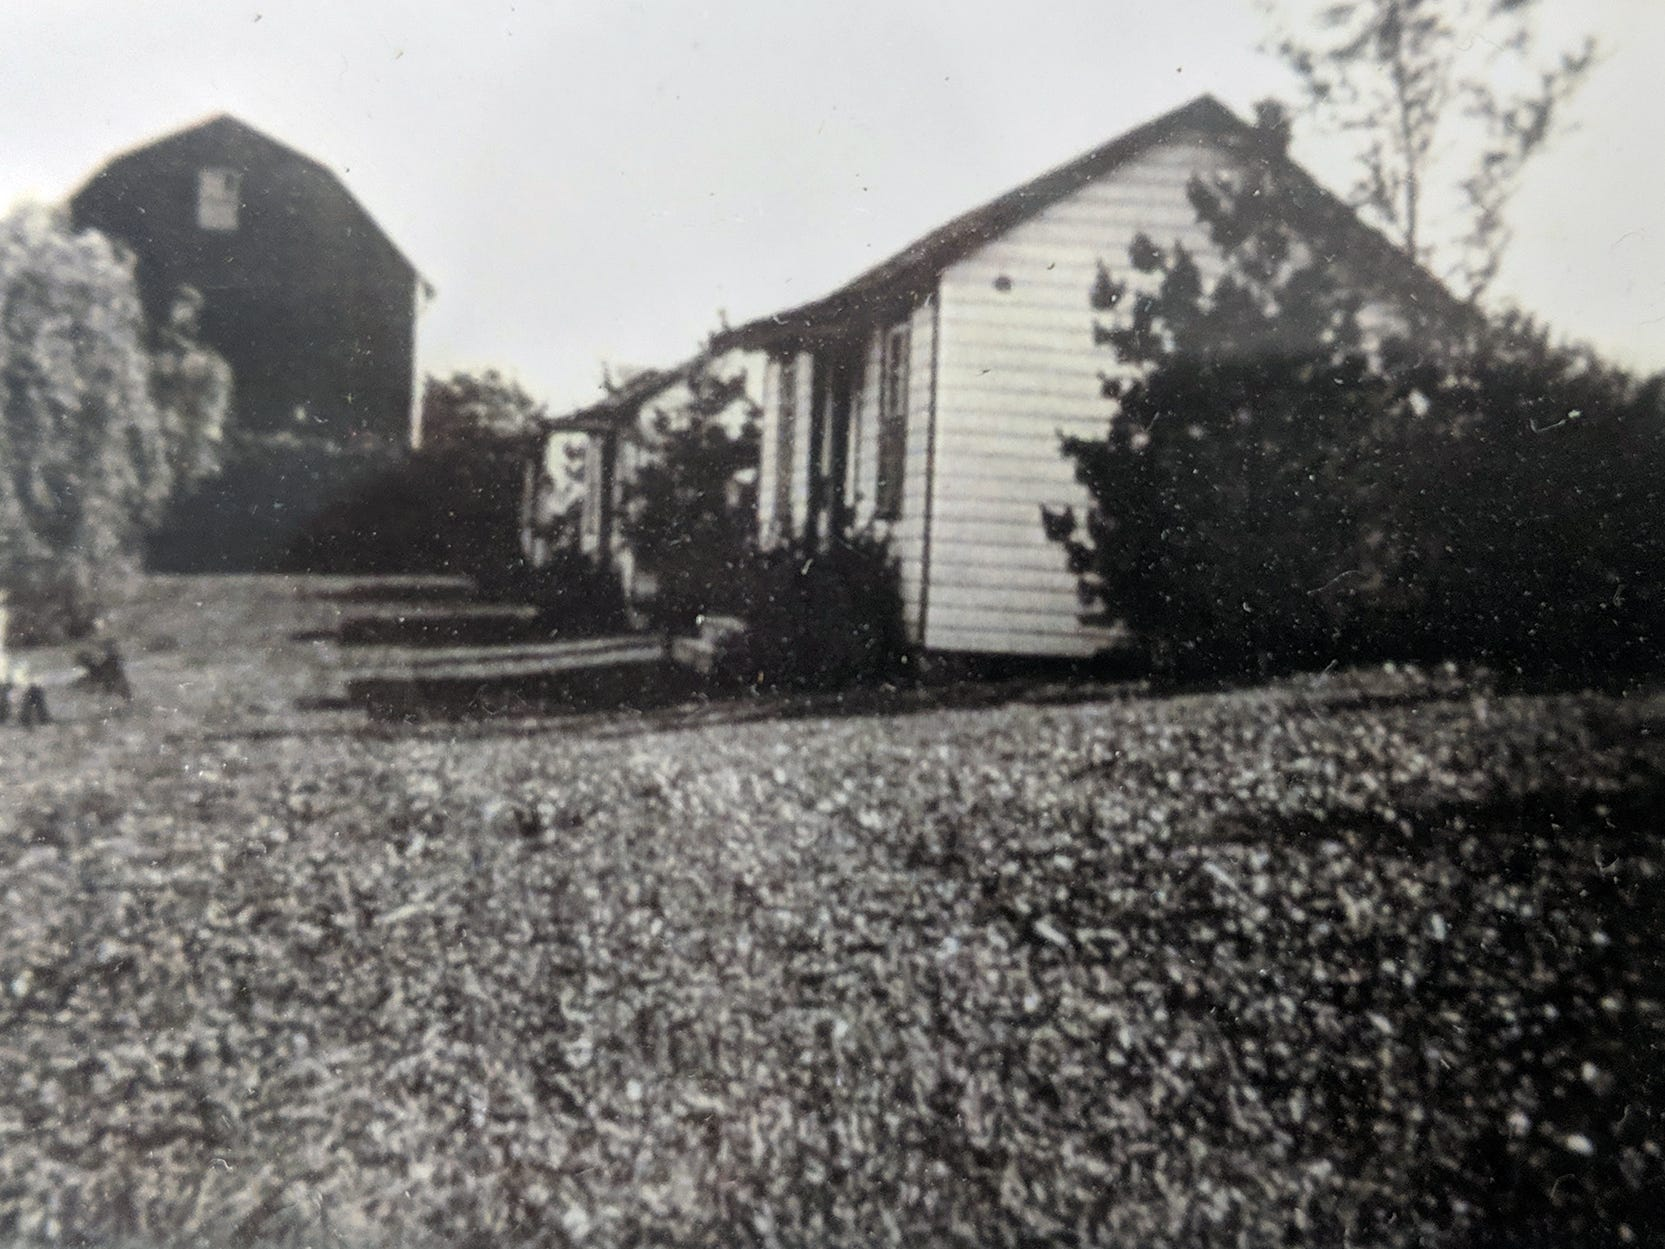 This is the Smith cottages as they looked in 1937.